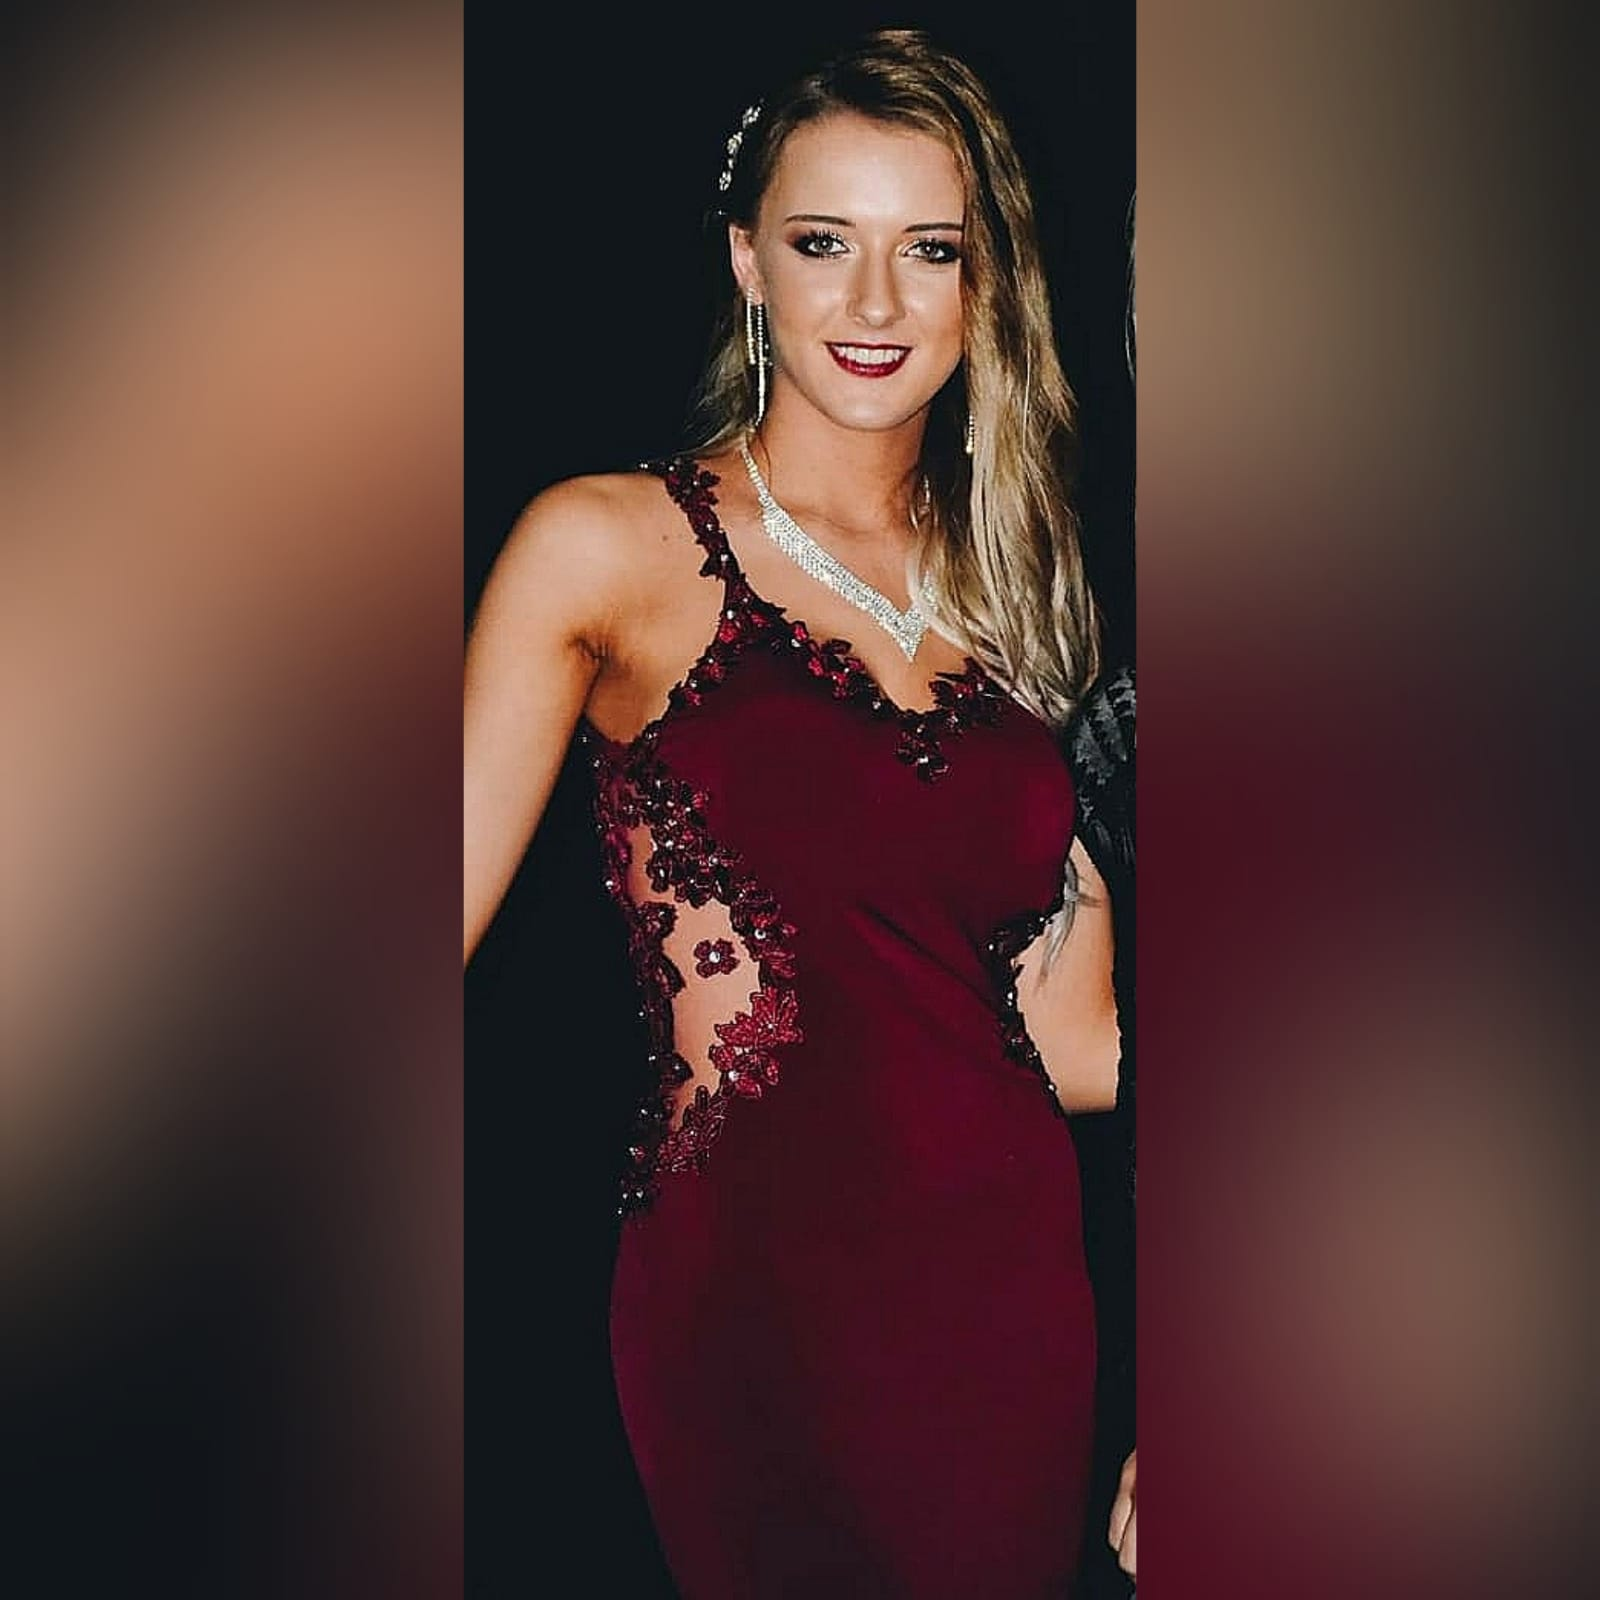 Burgundy long sexy matric farewell dress 2 burgundy long sexy matric farewell dress with an illusion lace low back and side tummy. Sweetheart neckline detailed with lace. With a slit and a train.